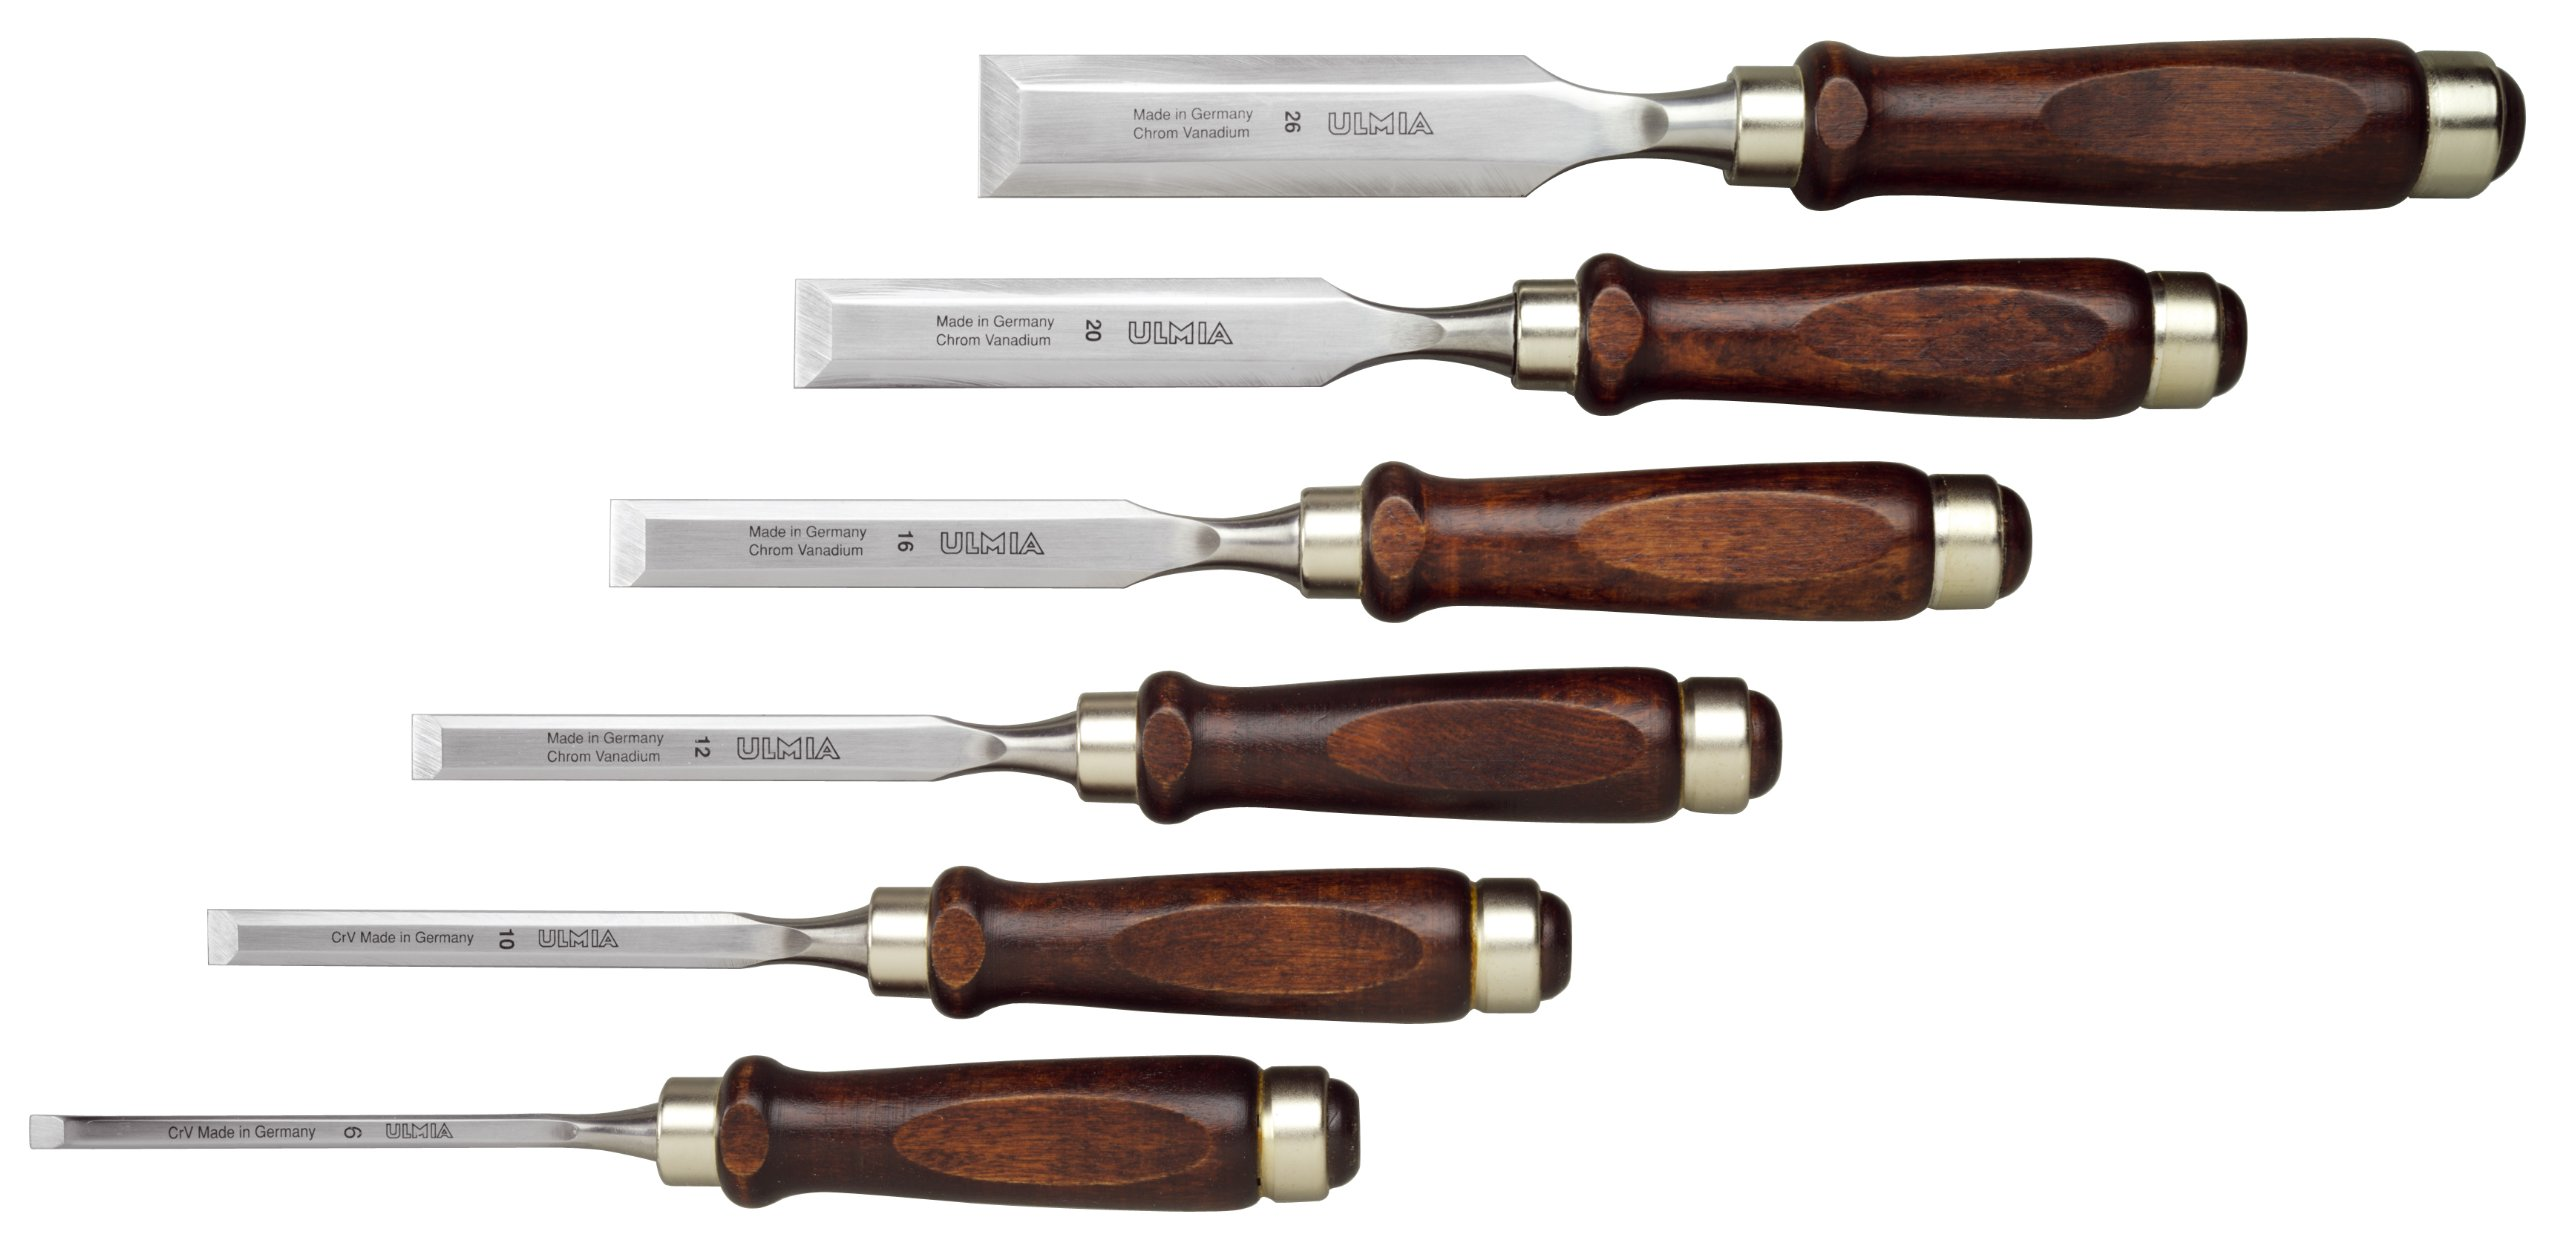 Ulmia 6 Piece Firmer Chisel Set by Ulmia